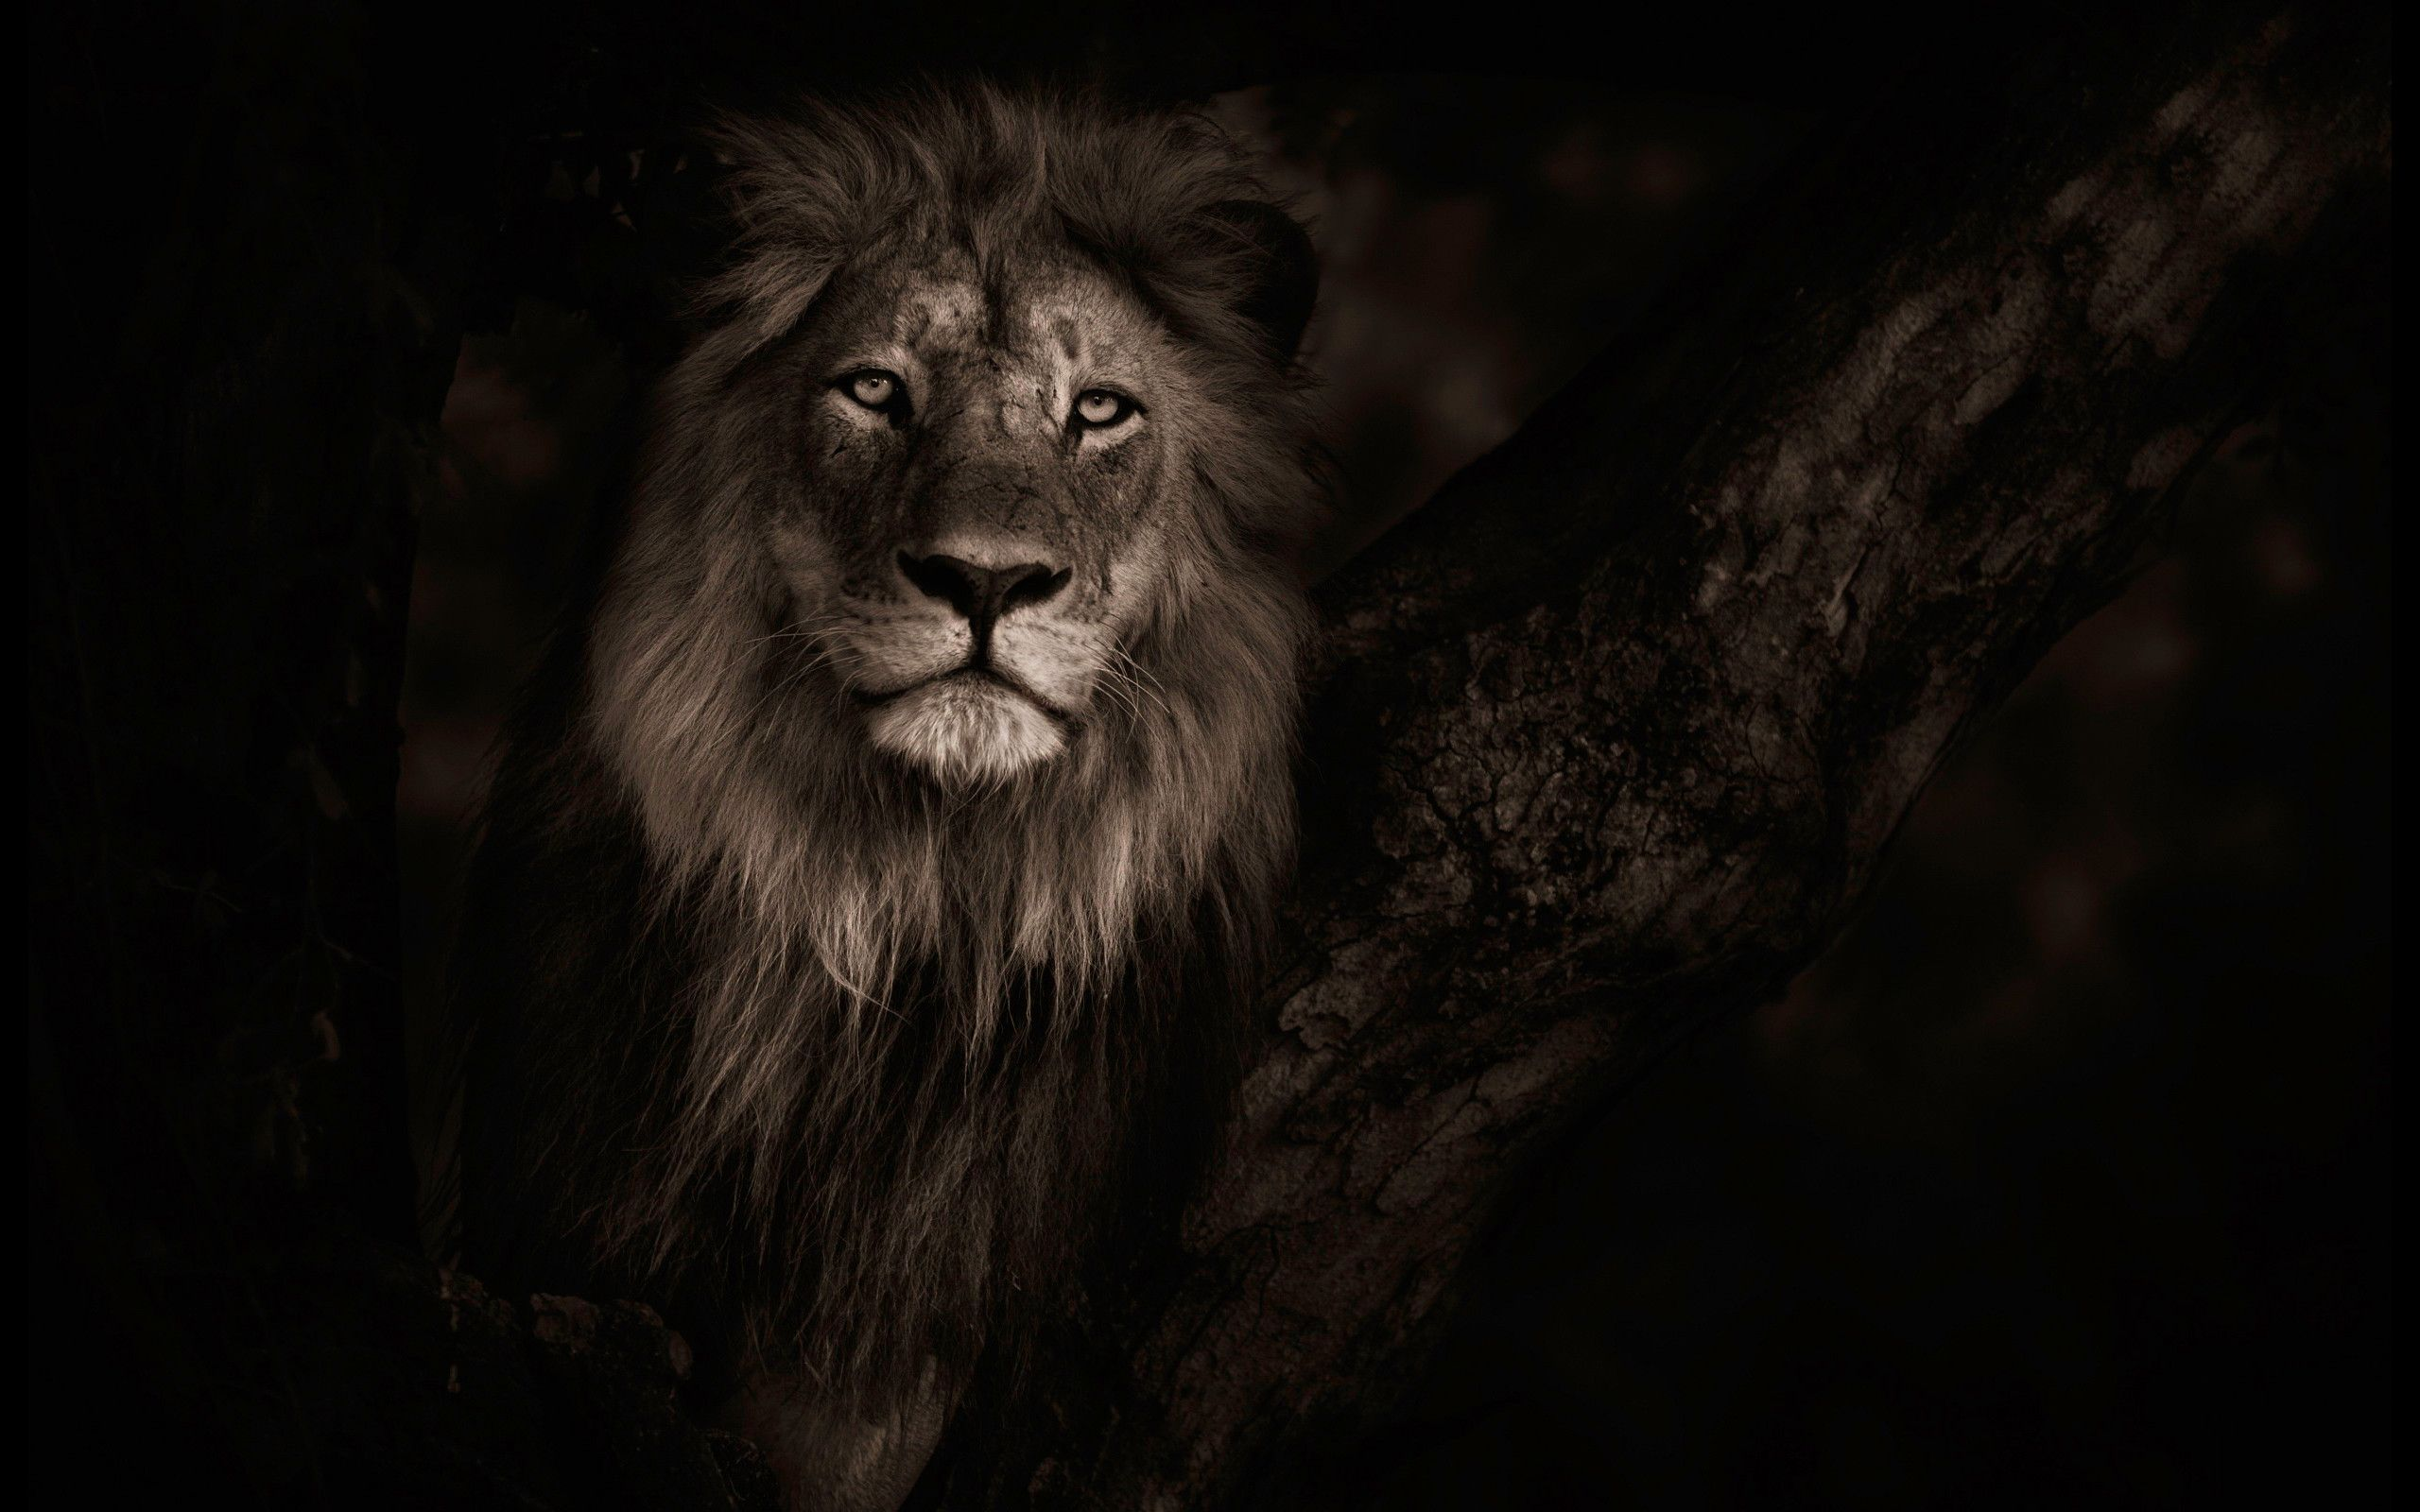 Res 2560x1600 Top Beautiful Lion Photos 14 4k Ultra Hd B Scb Wallpapers In Wallpaper Lion Wallpaper Colorful Lion Black And White Lion